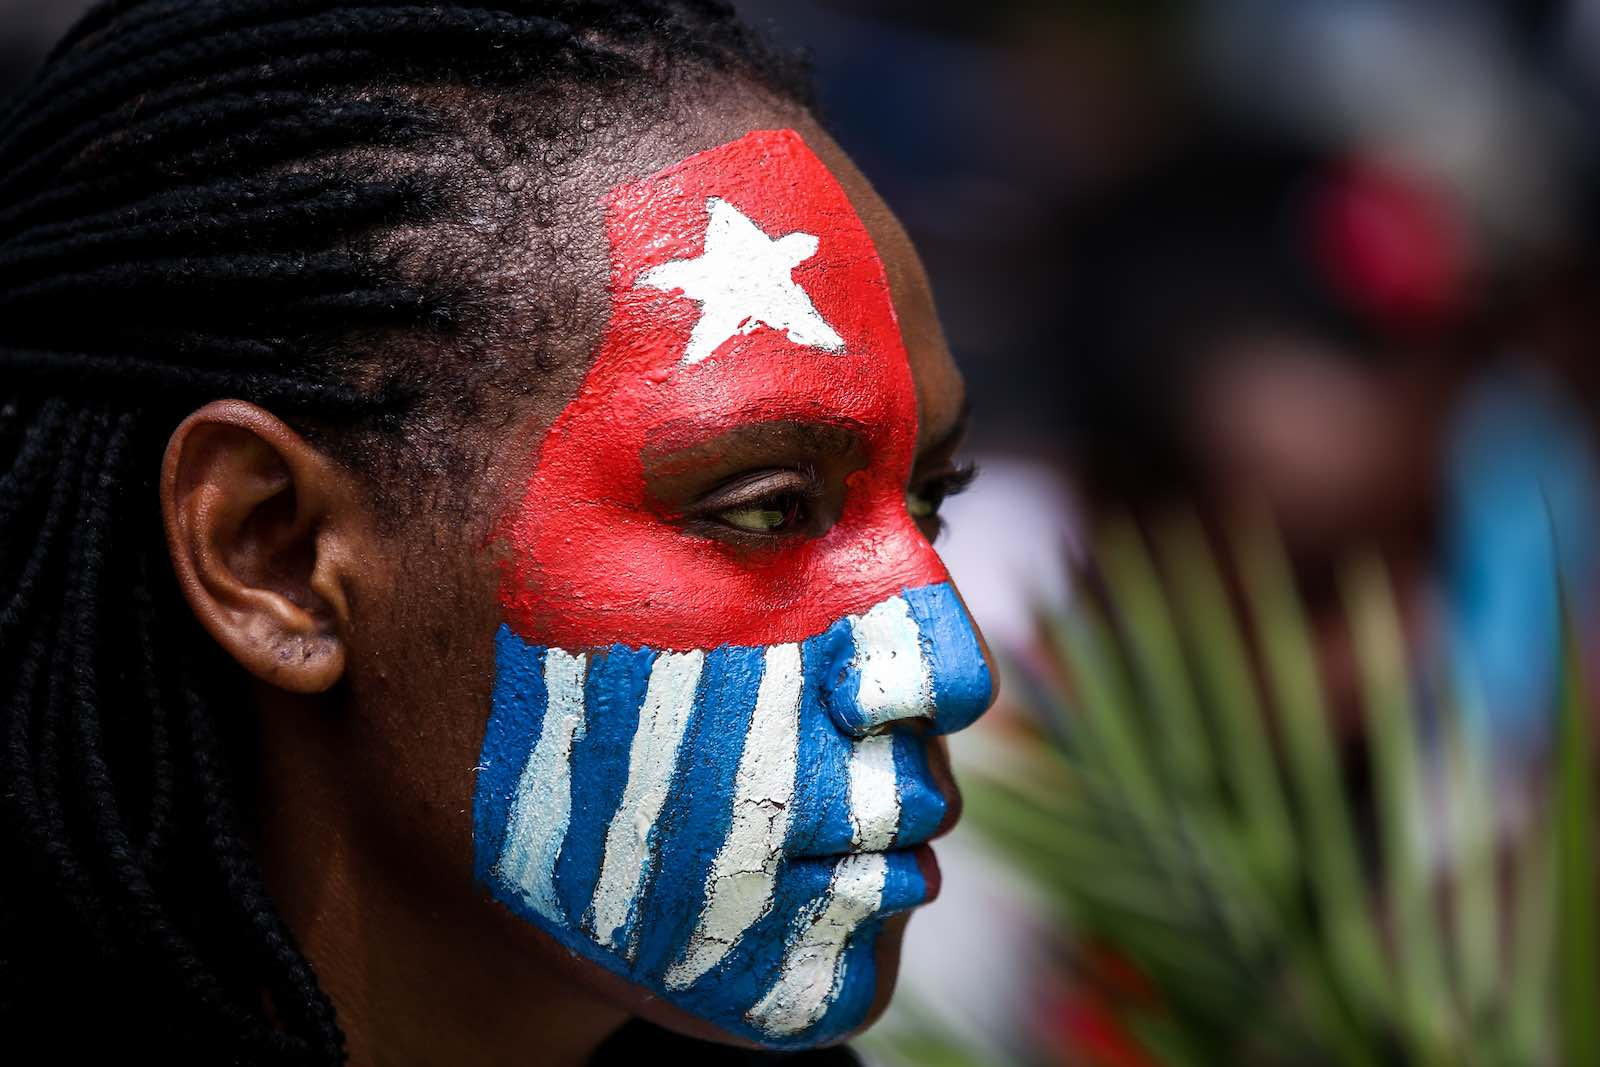 A Papuan student, her face painted with the West Papua flag, during a rally in Jakarta, Indonesia, 28 August 2019 (Andrew Gal/NurPhoto via Getty Images)